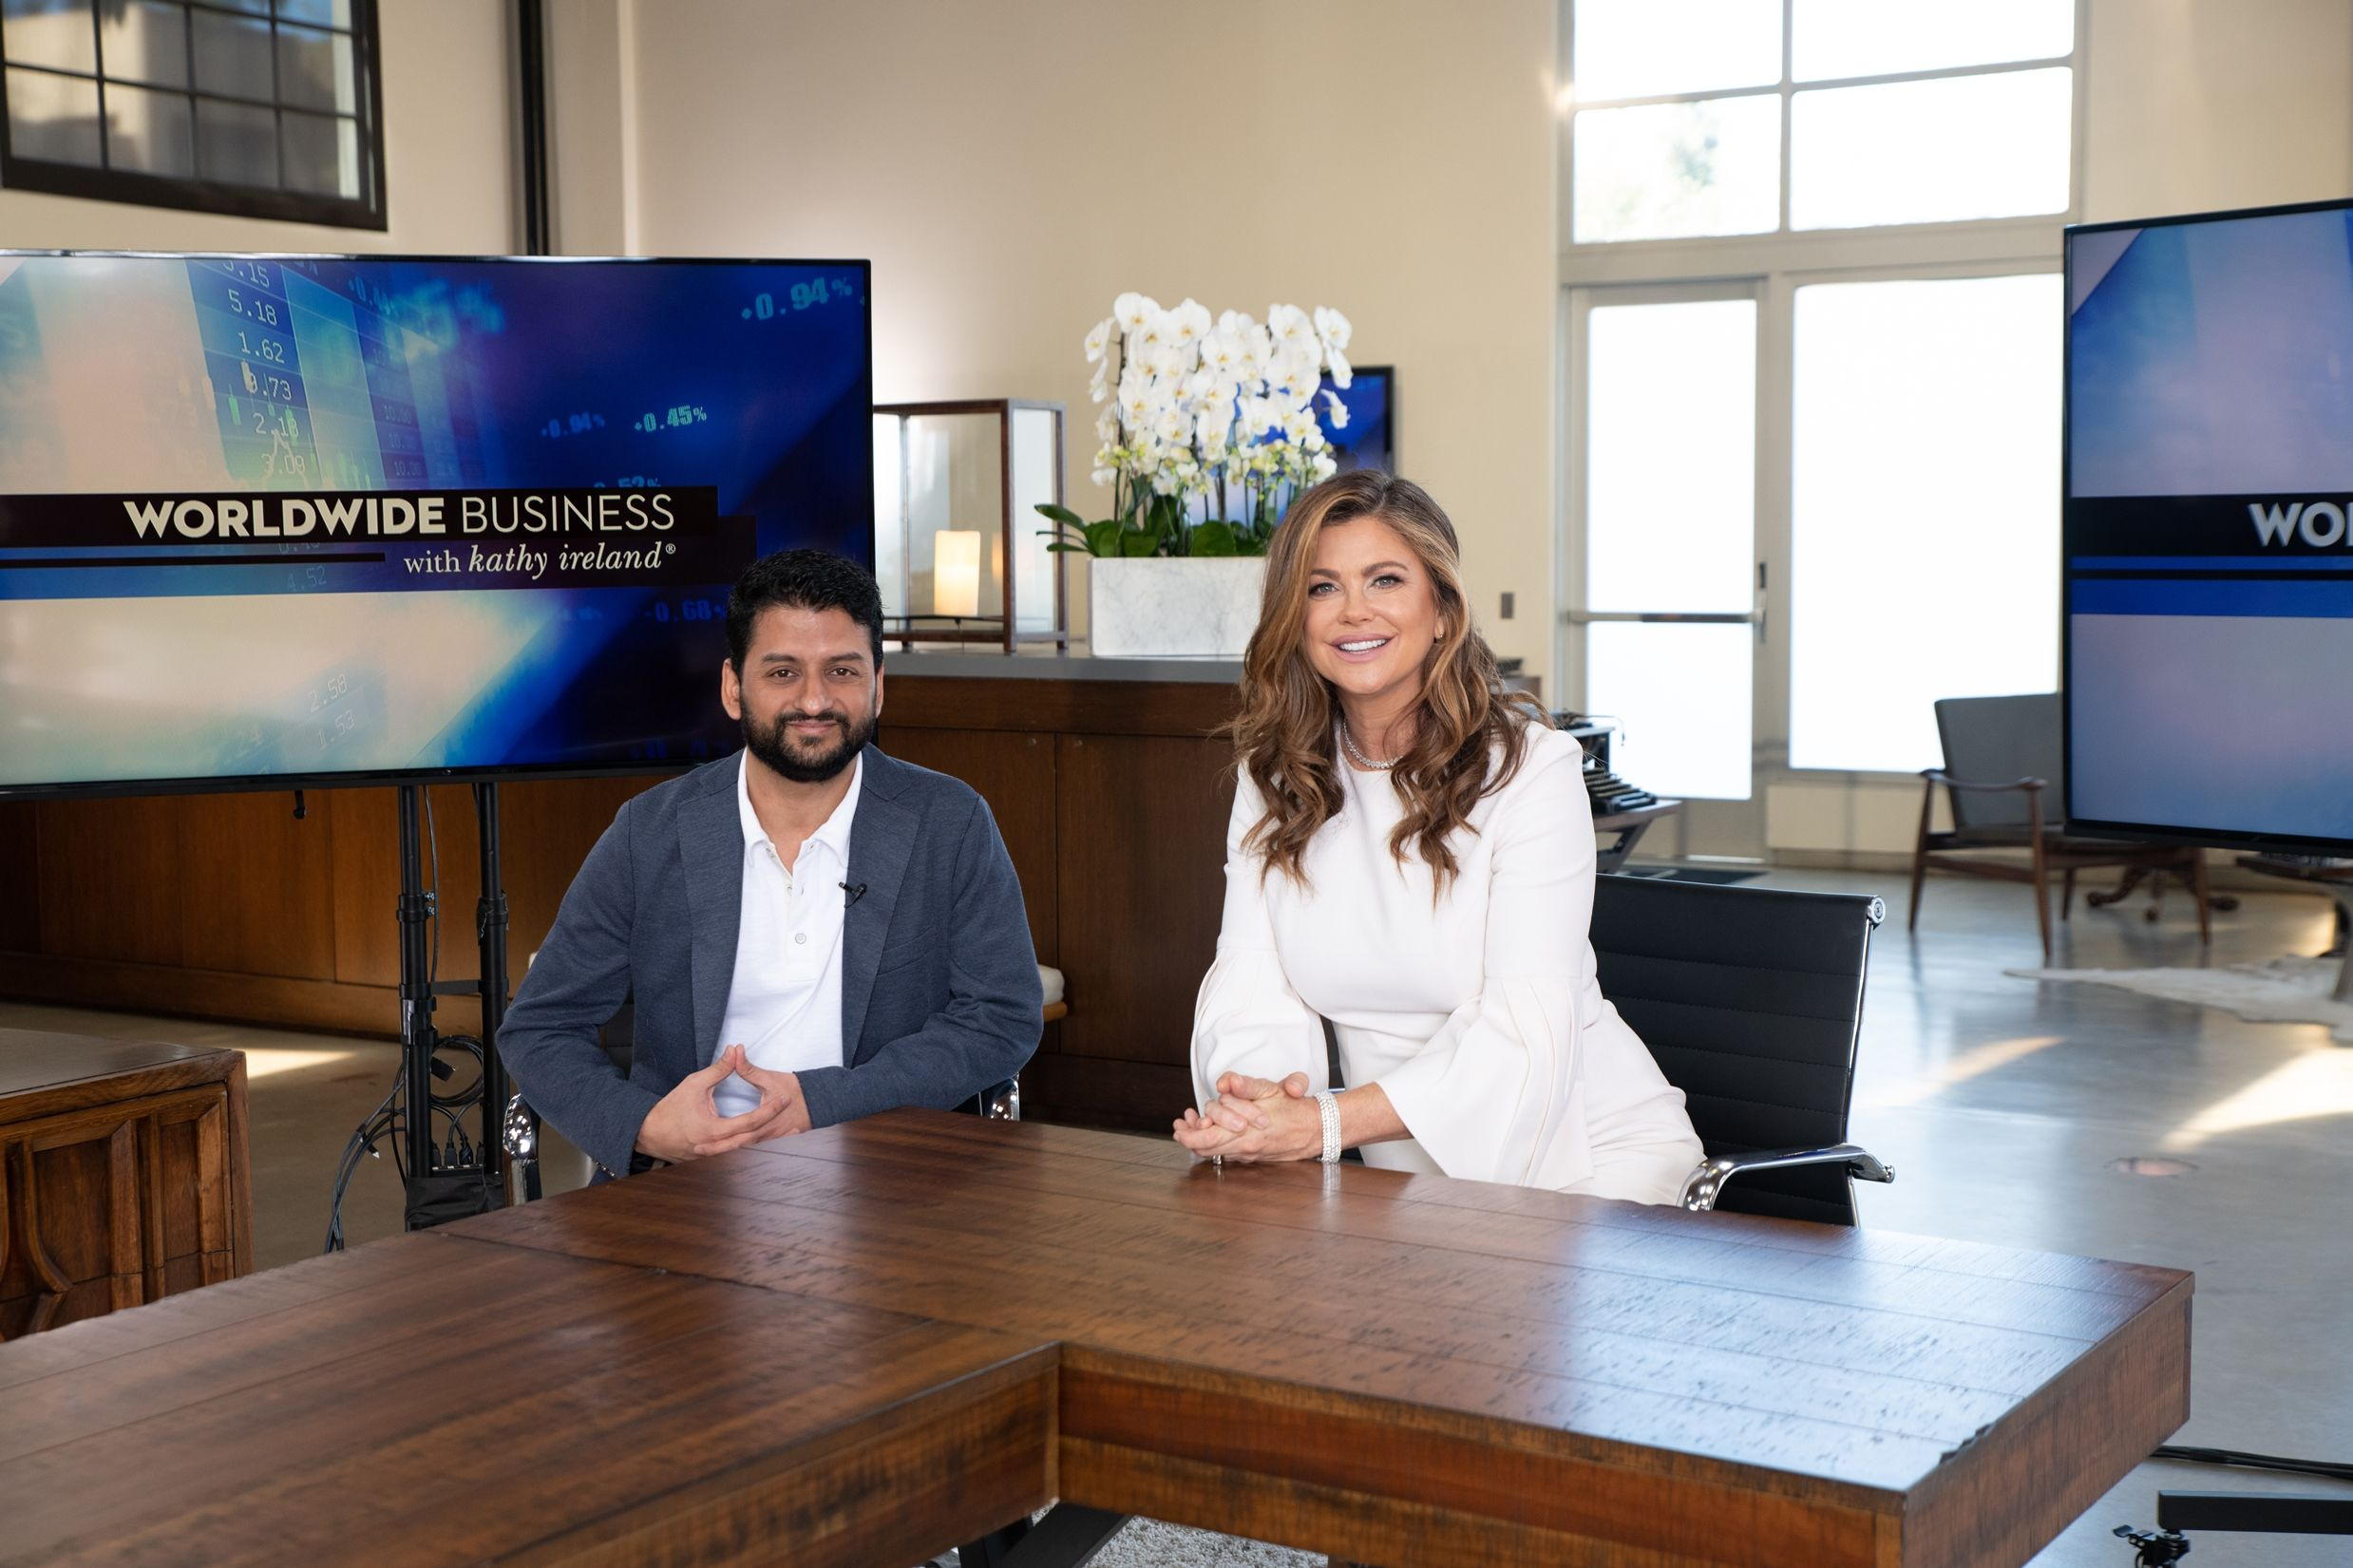 Worldwide Business With Kathy Ireland See Itsacheckmate Discuss Their Revolutionary New Technology That Allows Restaurants Nashville News Kathy Ireland News Finance